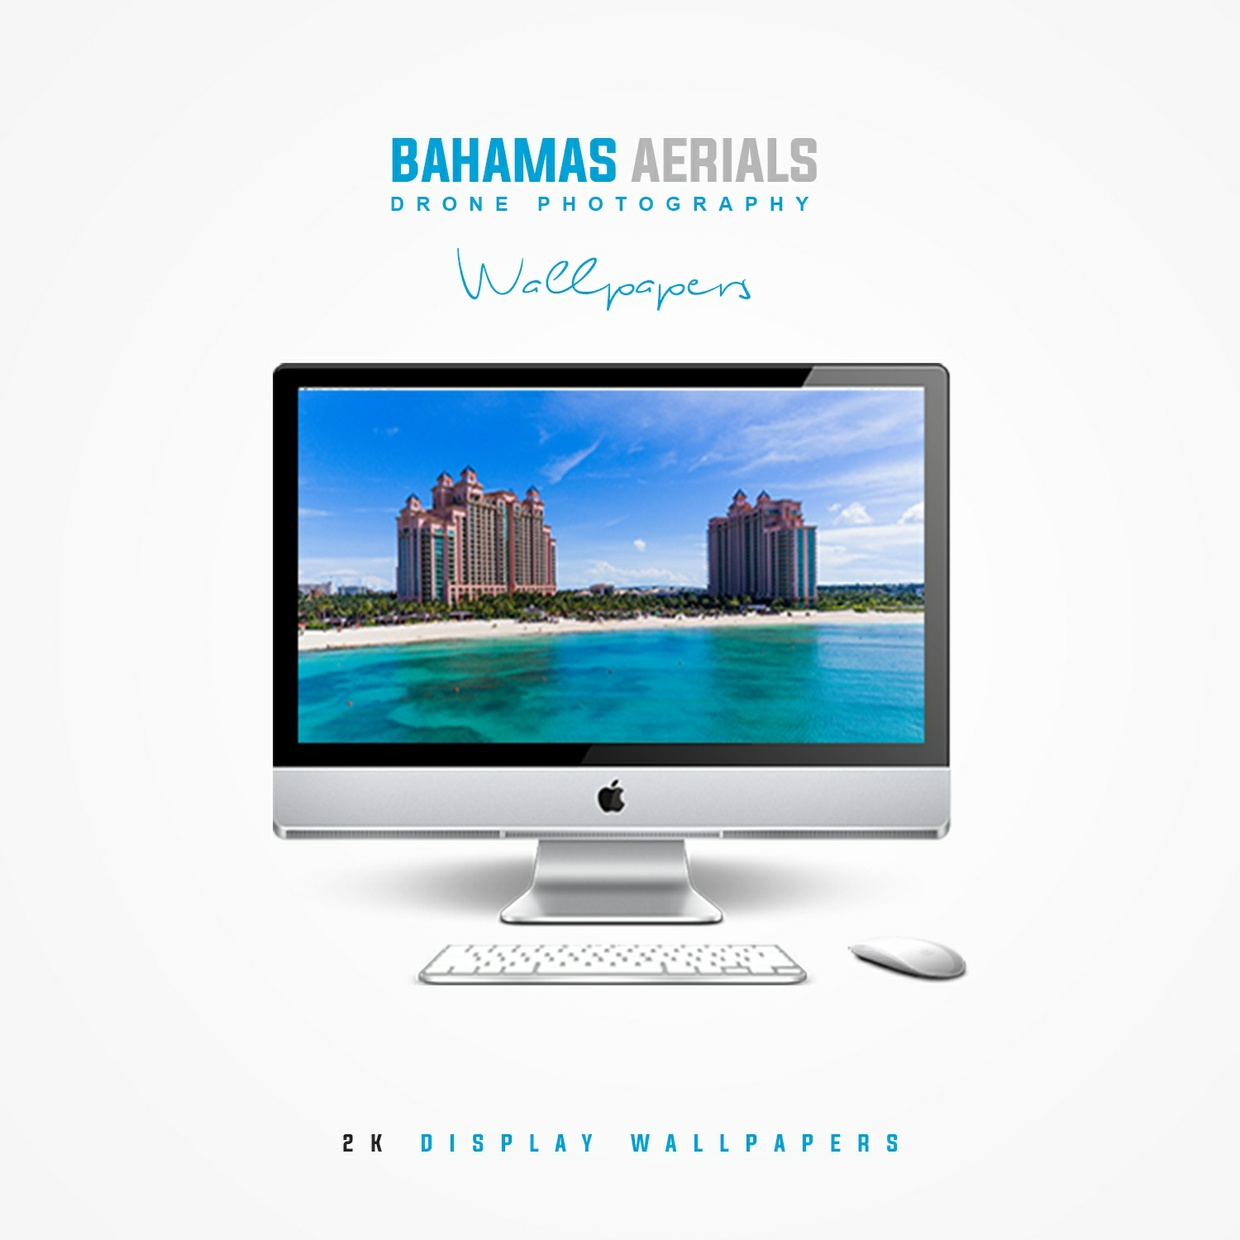 Bahamas Aerials (Drone Photography) - 10 Wallpapers